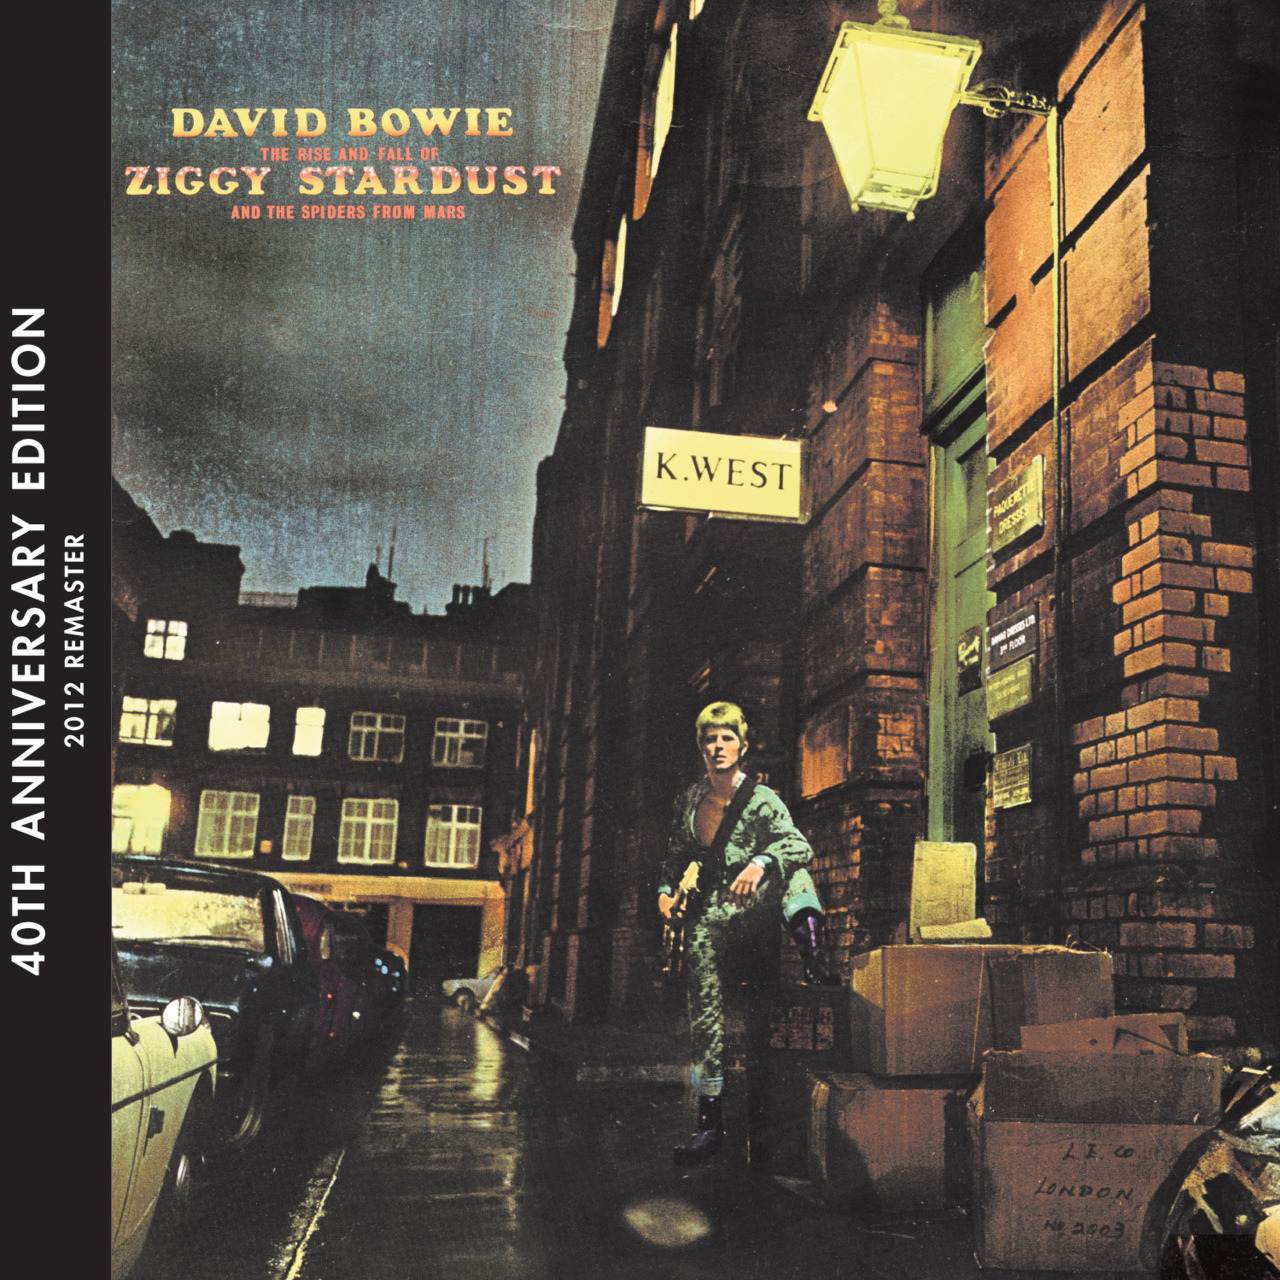 still listen to this album…top ten nprmusic:  Ziggy Stardust Turns 40 It's hard to imagine, but when David Bowie's landmark album first landed, almost no one cared.